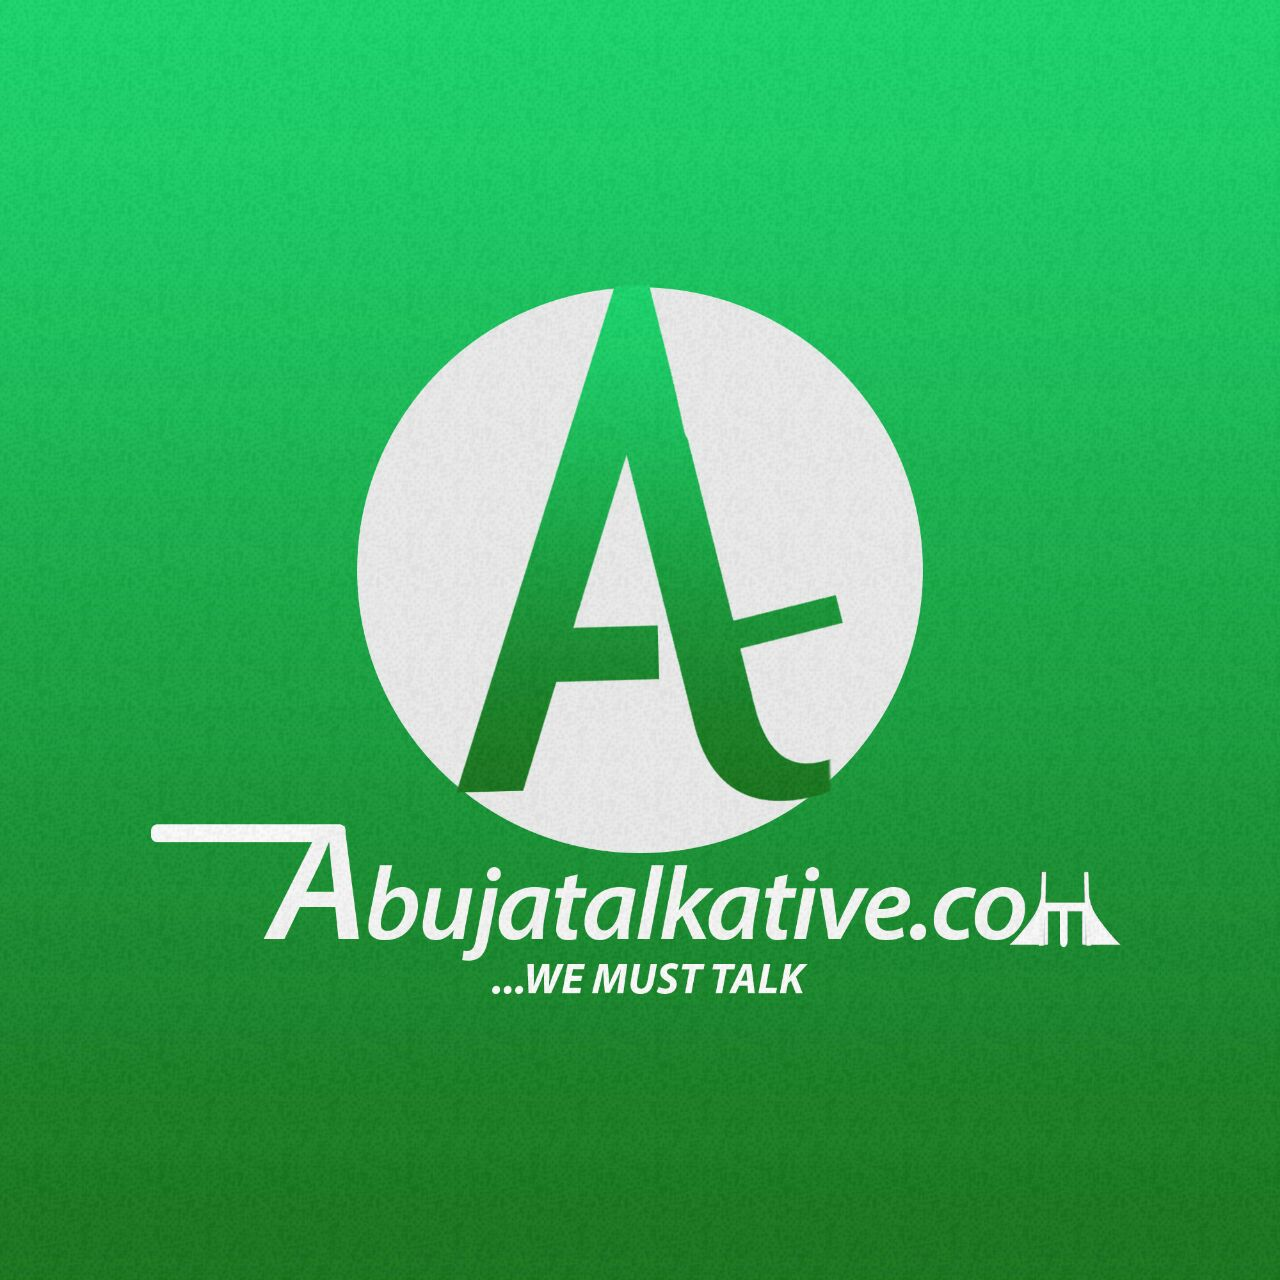 Abuja Talkative